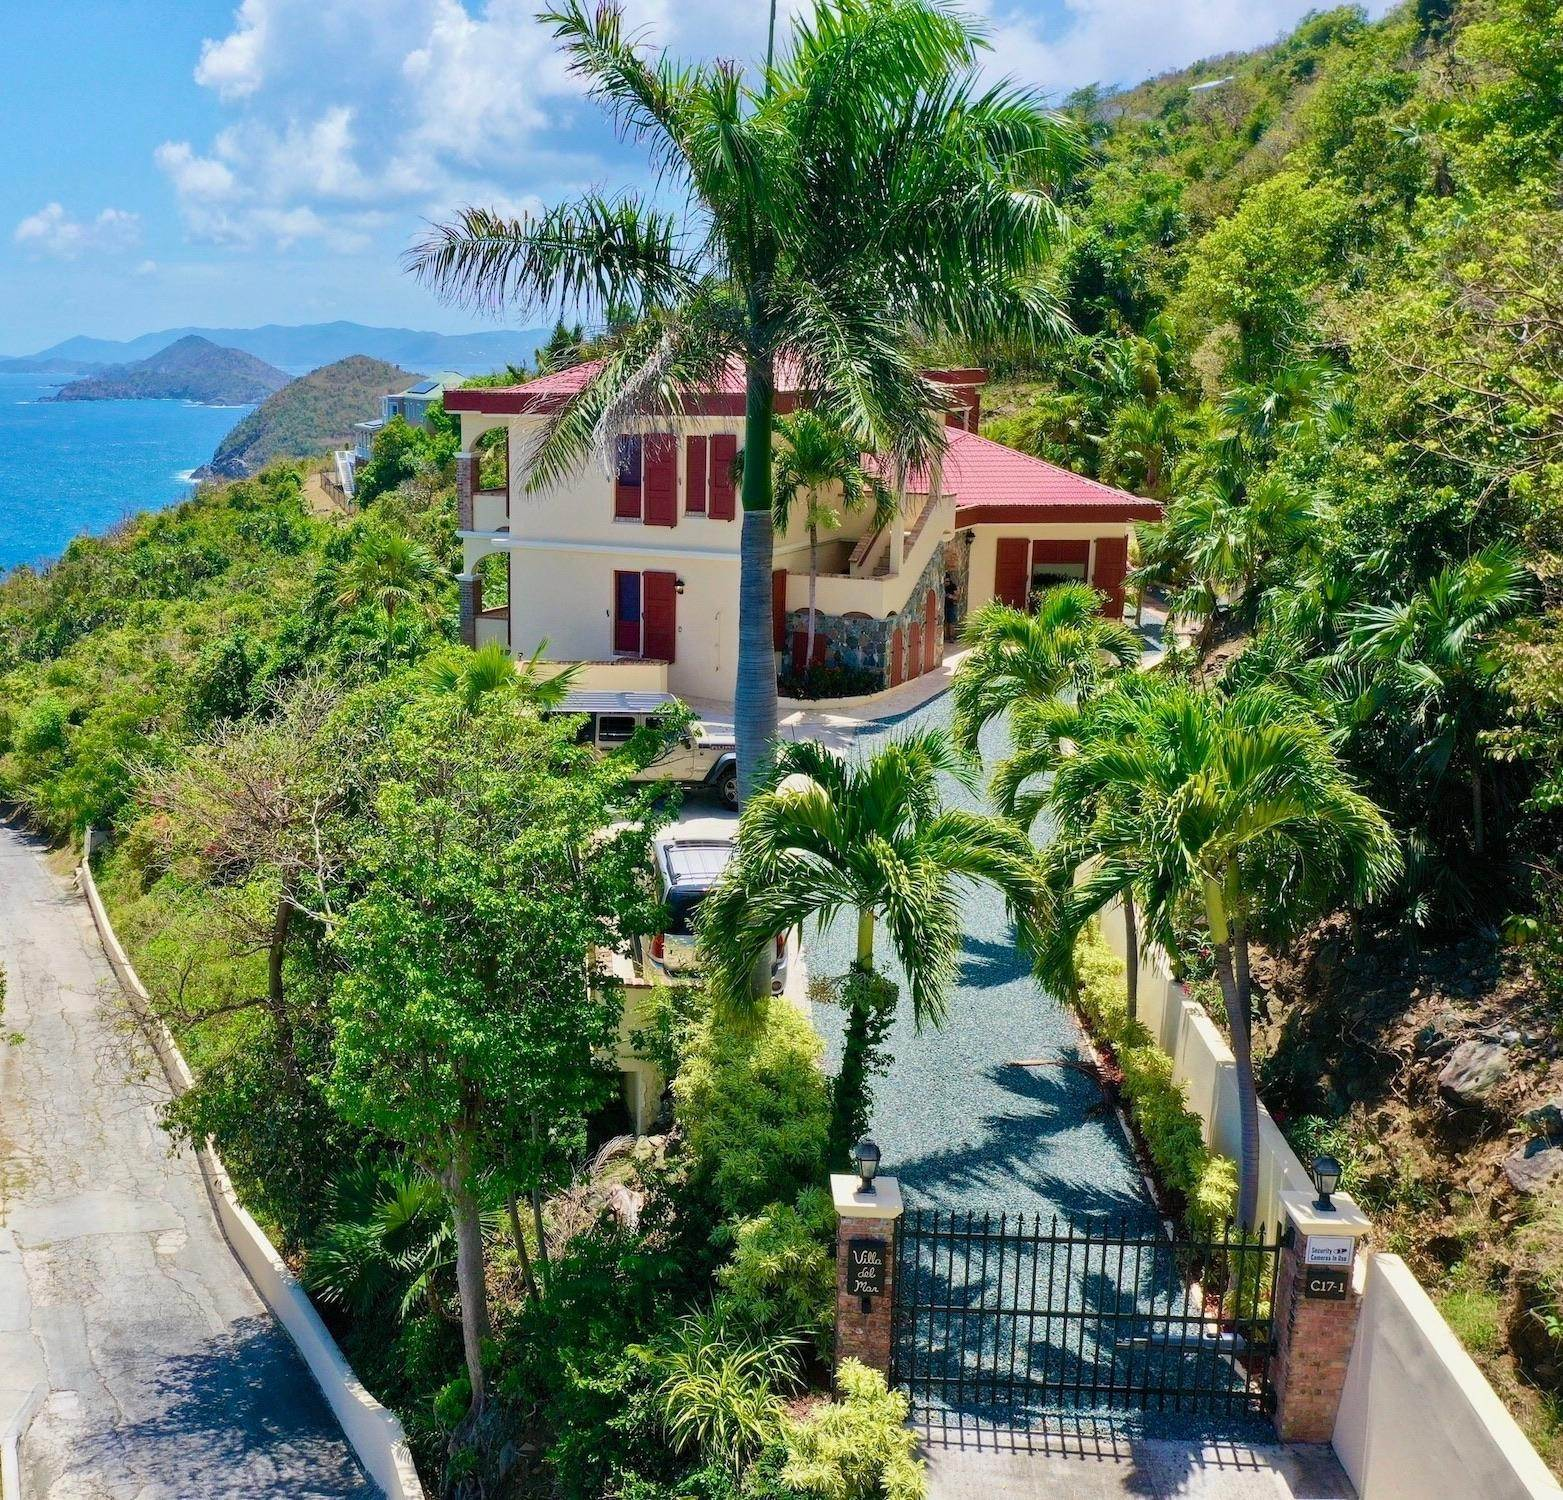 Single Family Home for Sale at C-17-1 Lovenlund GNS 00802 C-17-1 Lovenlund GNS St Thomas, Virgin Islands,00802 United States Virgin Islands